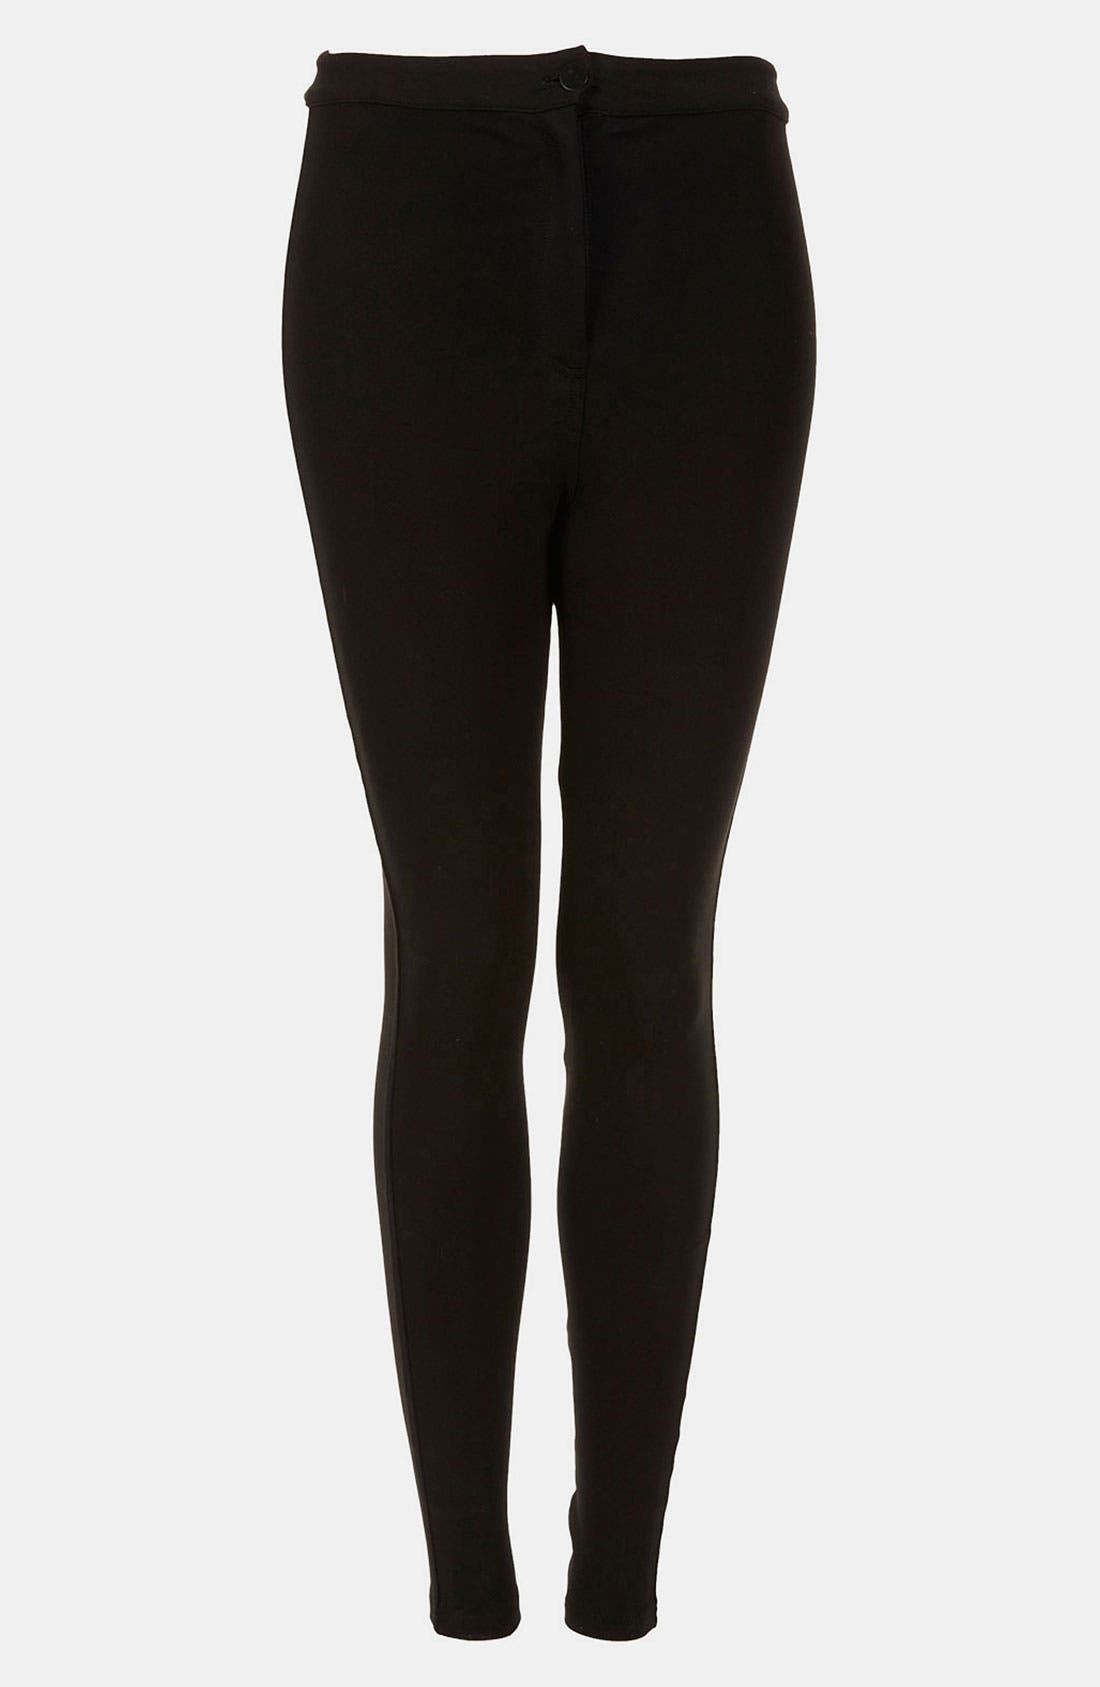 Alternate Image 1 Selected - Topshop High Waist Ponte Skinny Pants